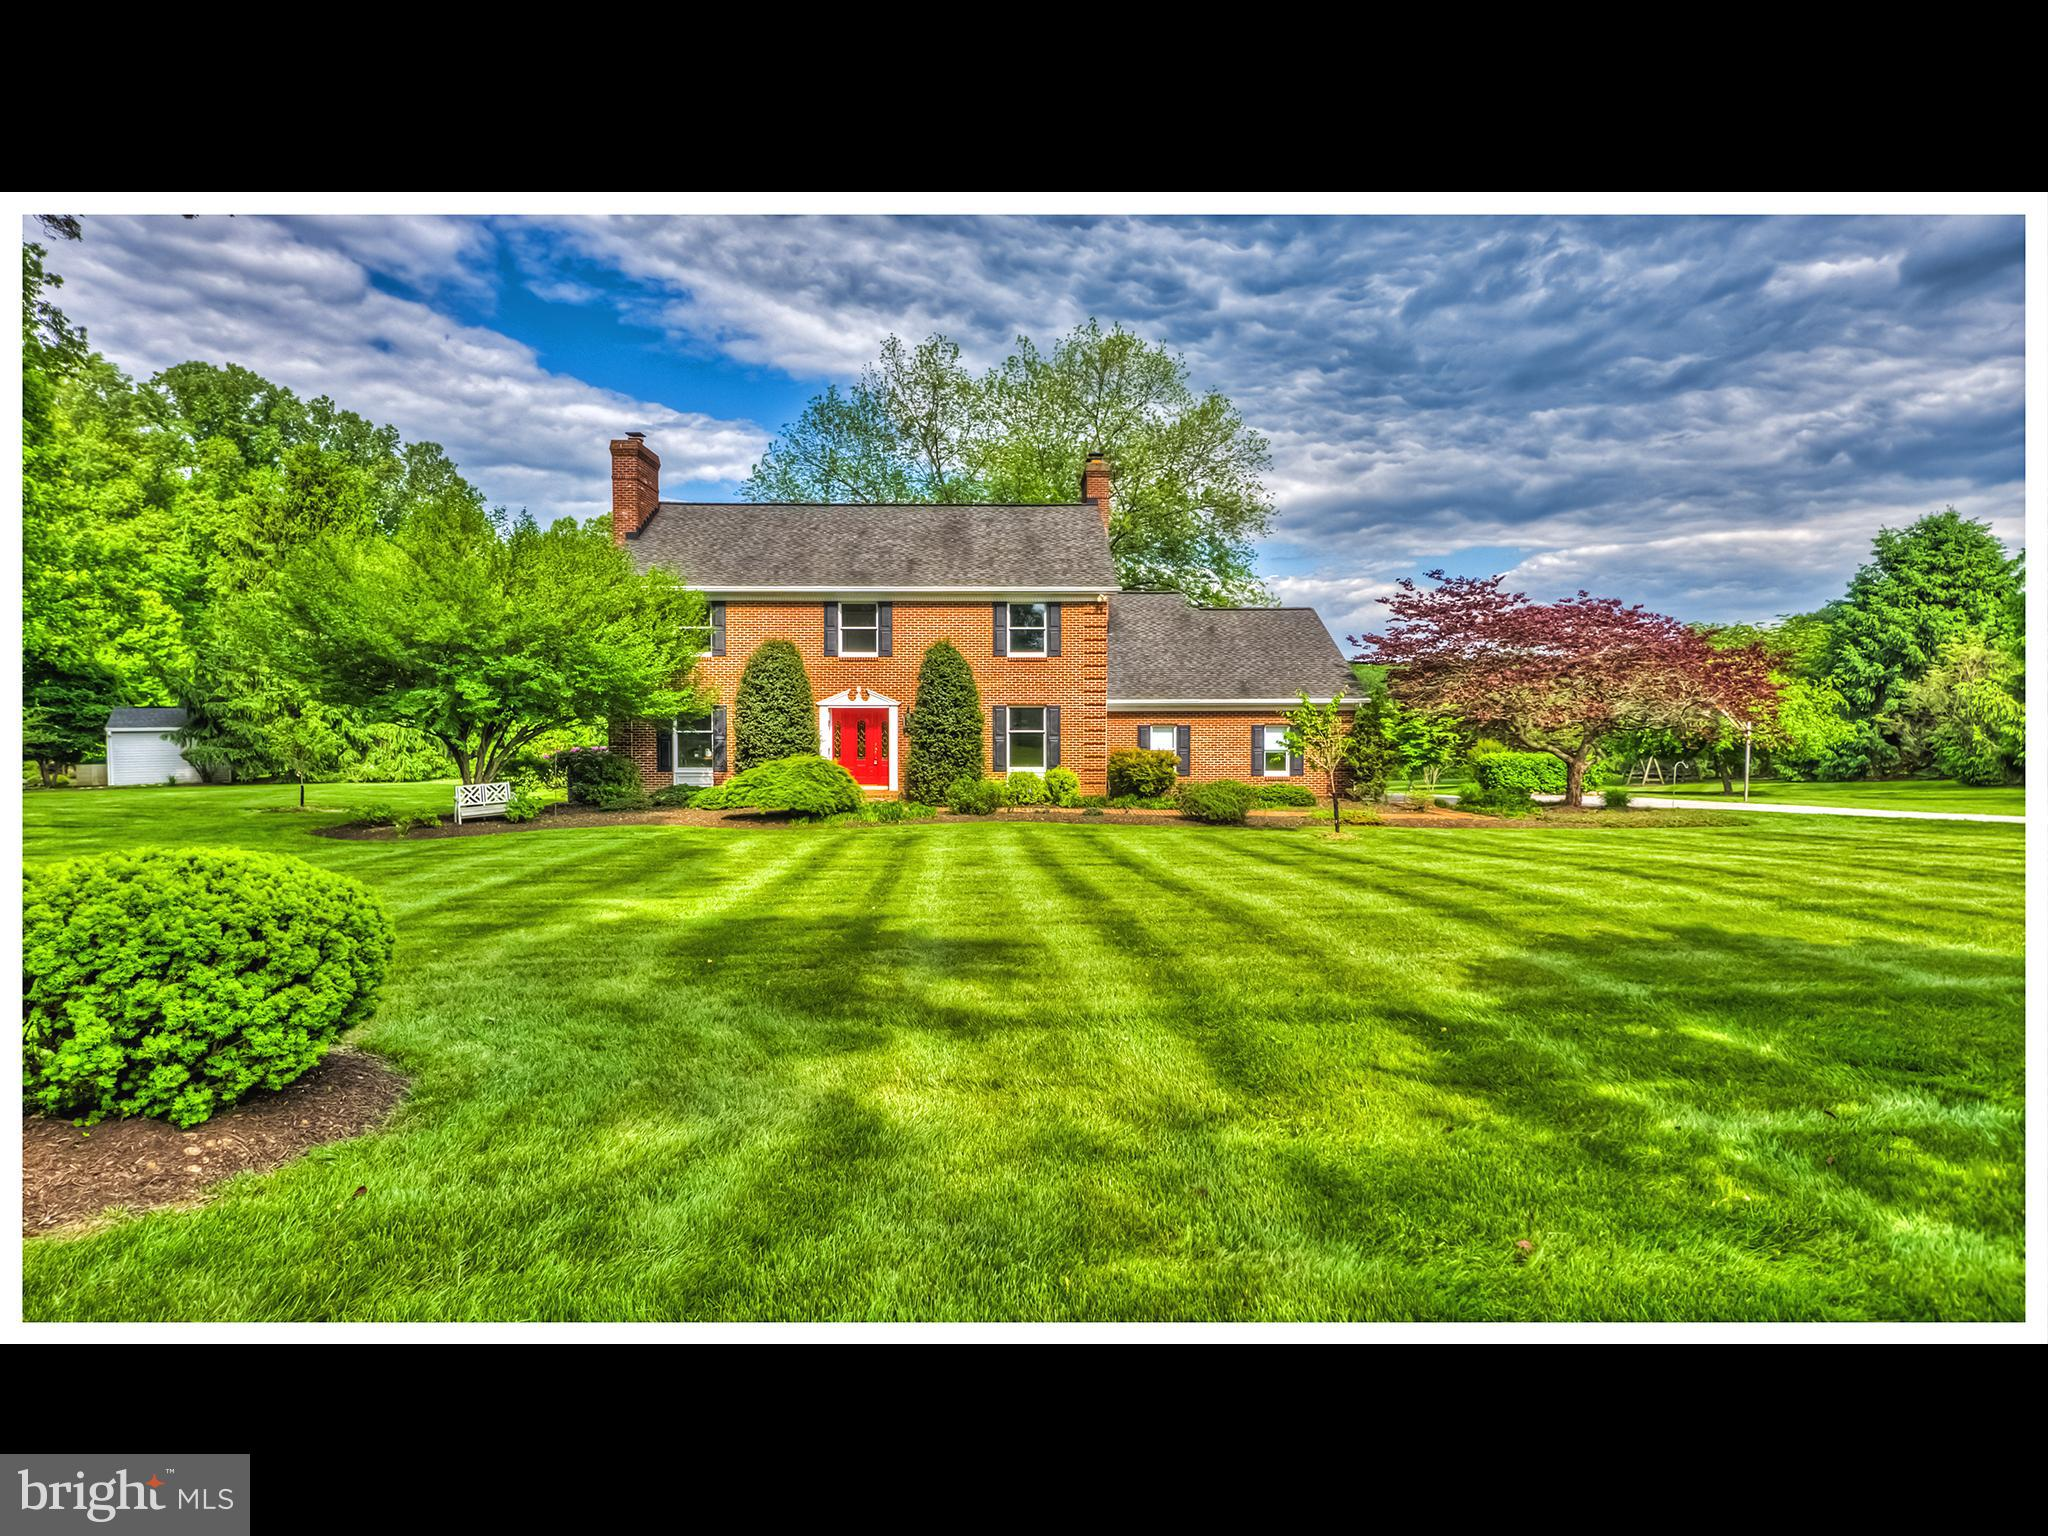 7011 BRENTWOOD DRIVE, MARRIOTTSVILLE, MD 21104